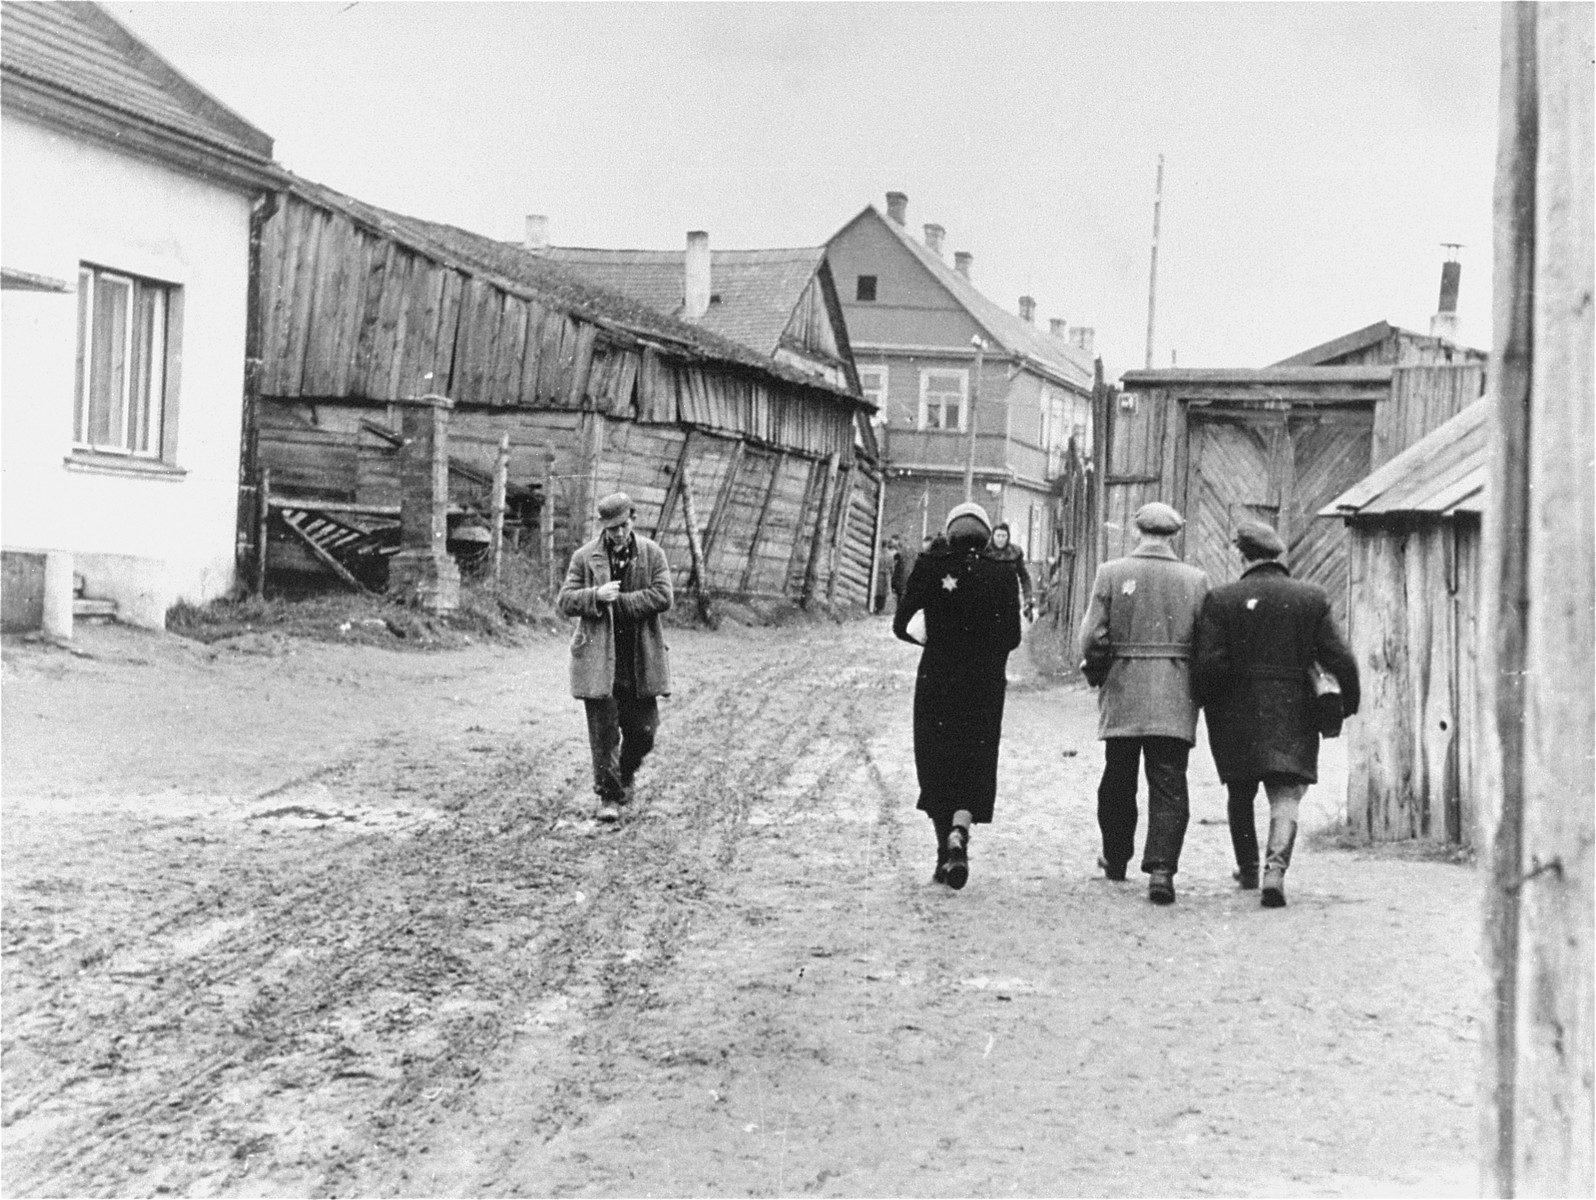 Street scene in the Kovno ghetto.    Pictured first on the right is Chaim Yellin. To his left is his friend, Pesach Shater.